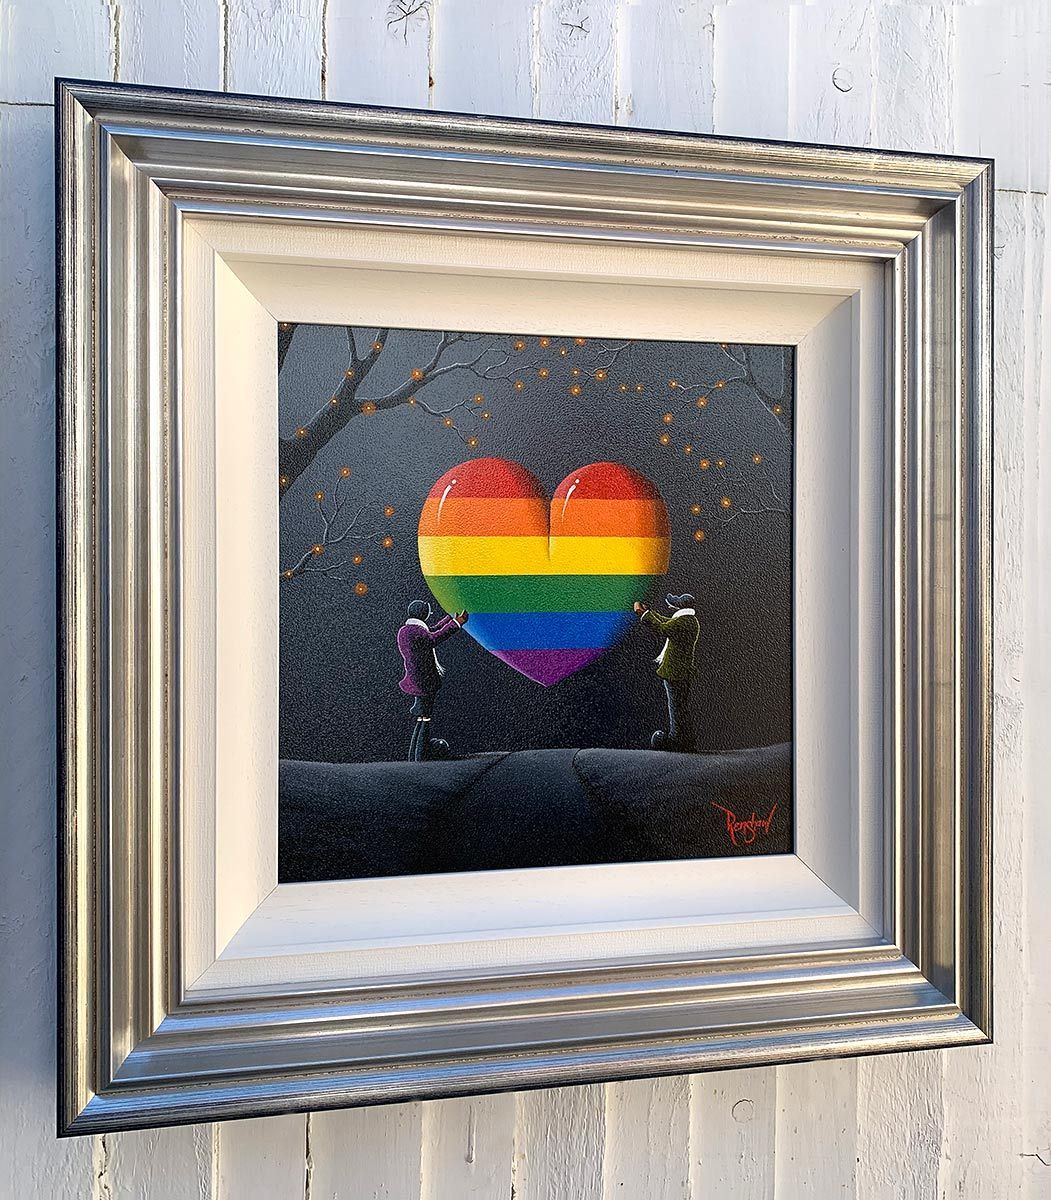 Pride - Original David Renshaw Framed